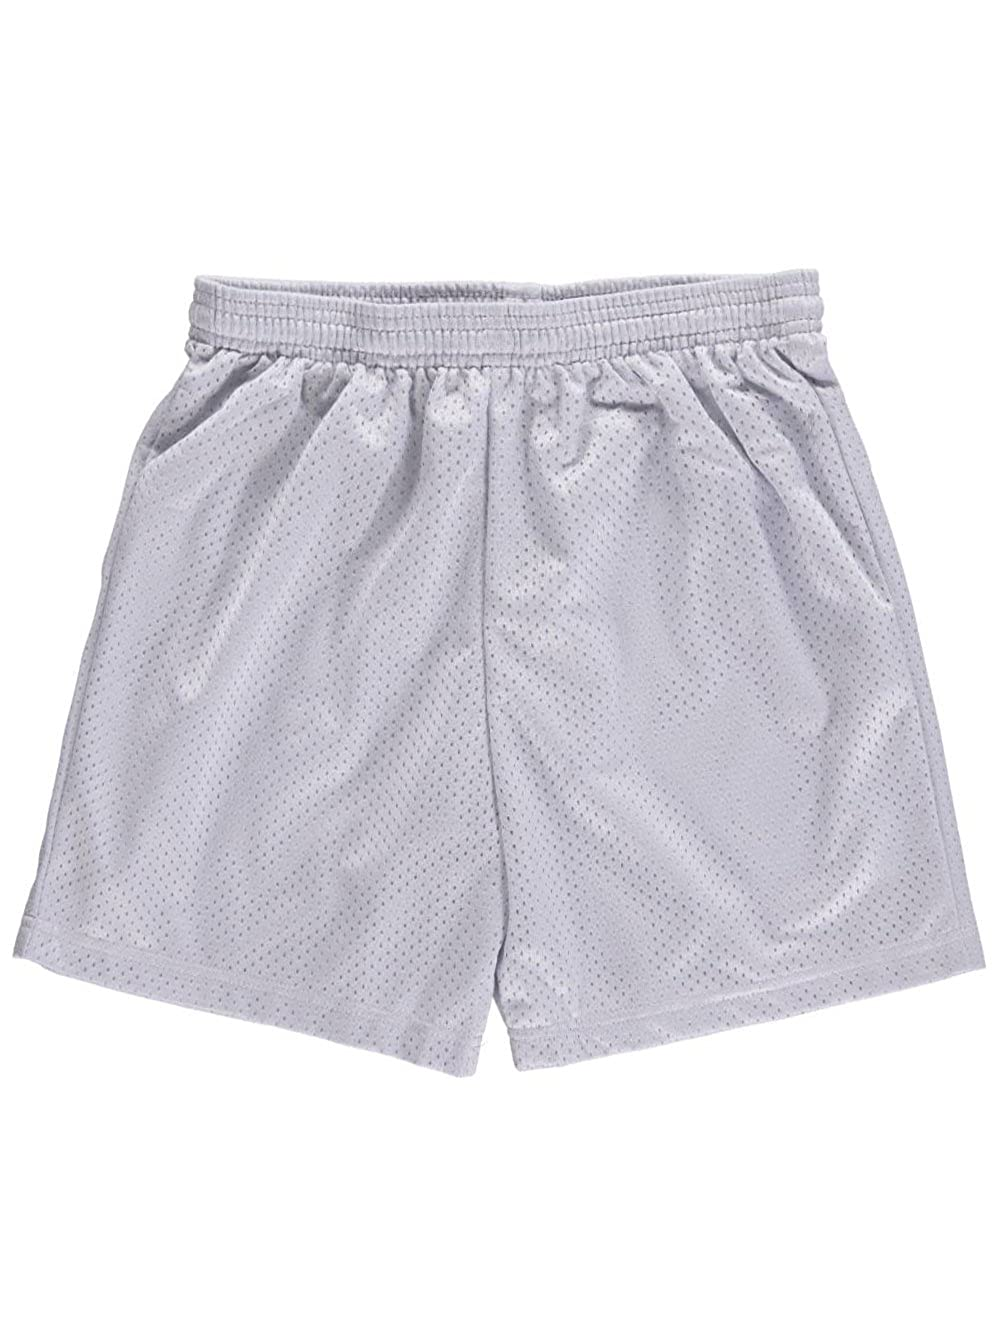 A4 Boys' Athletic Shorts A4 Boys' Athletic Shorts